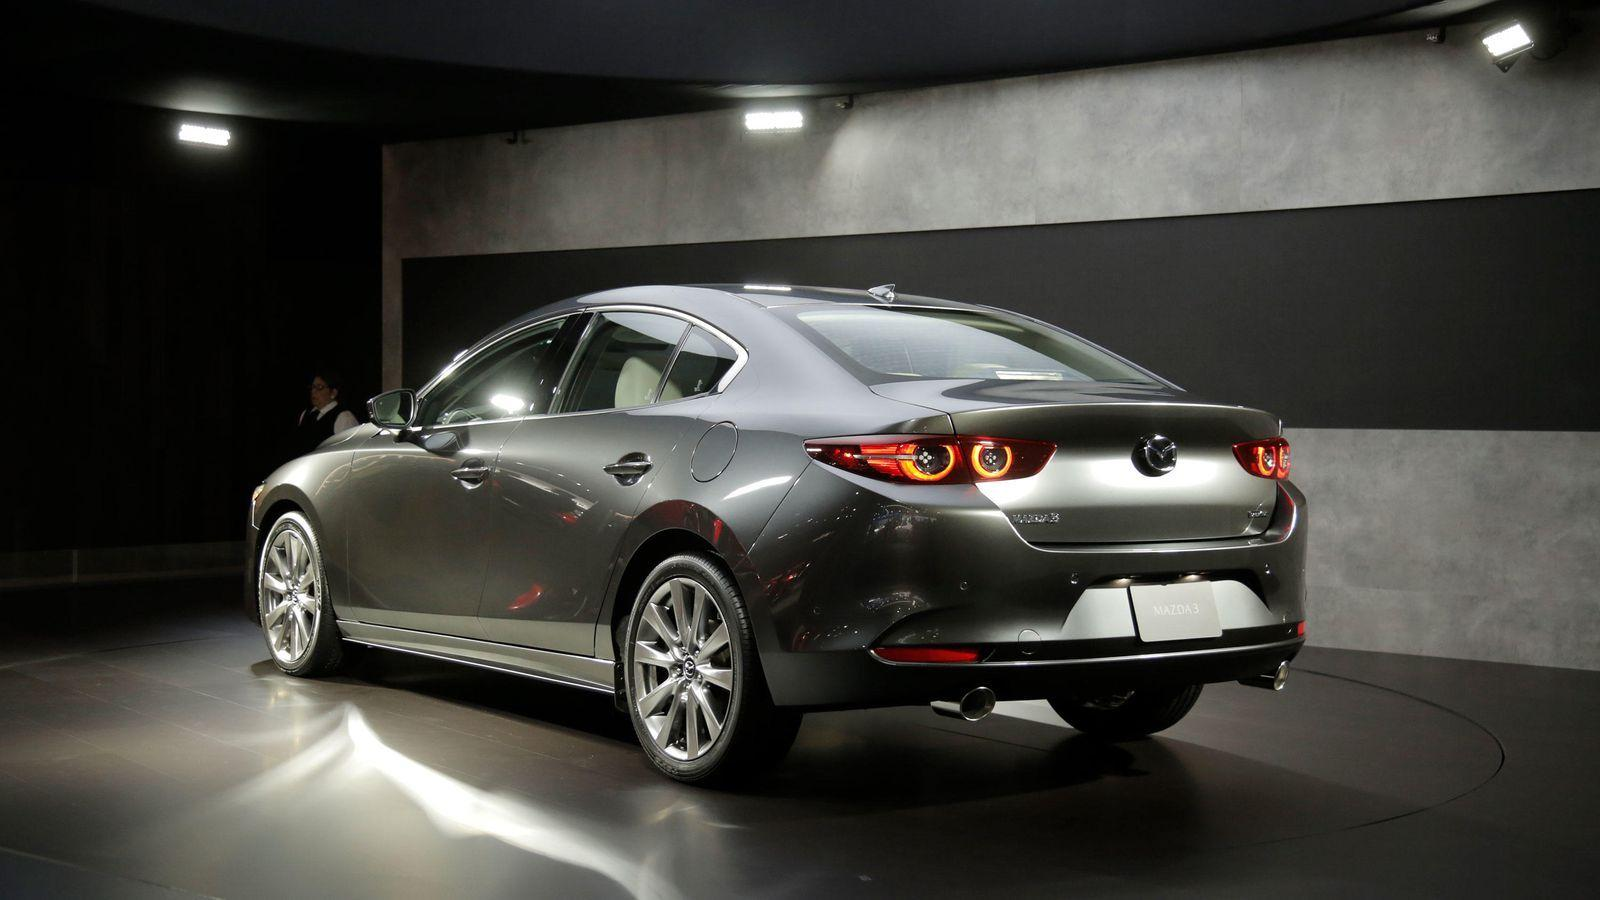 The Best Cuando Sale El Mazda 3 2019 InteriorCar And Vehicle Review